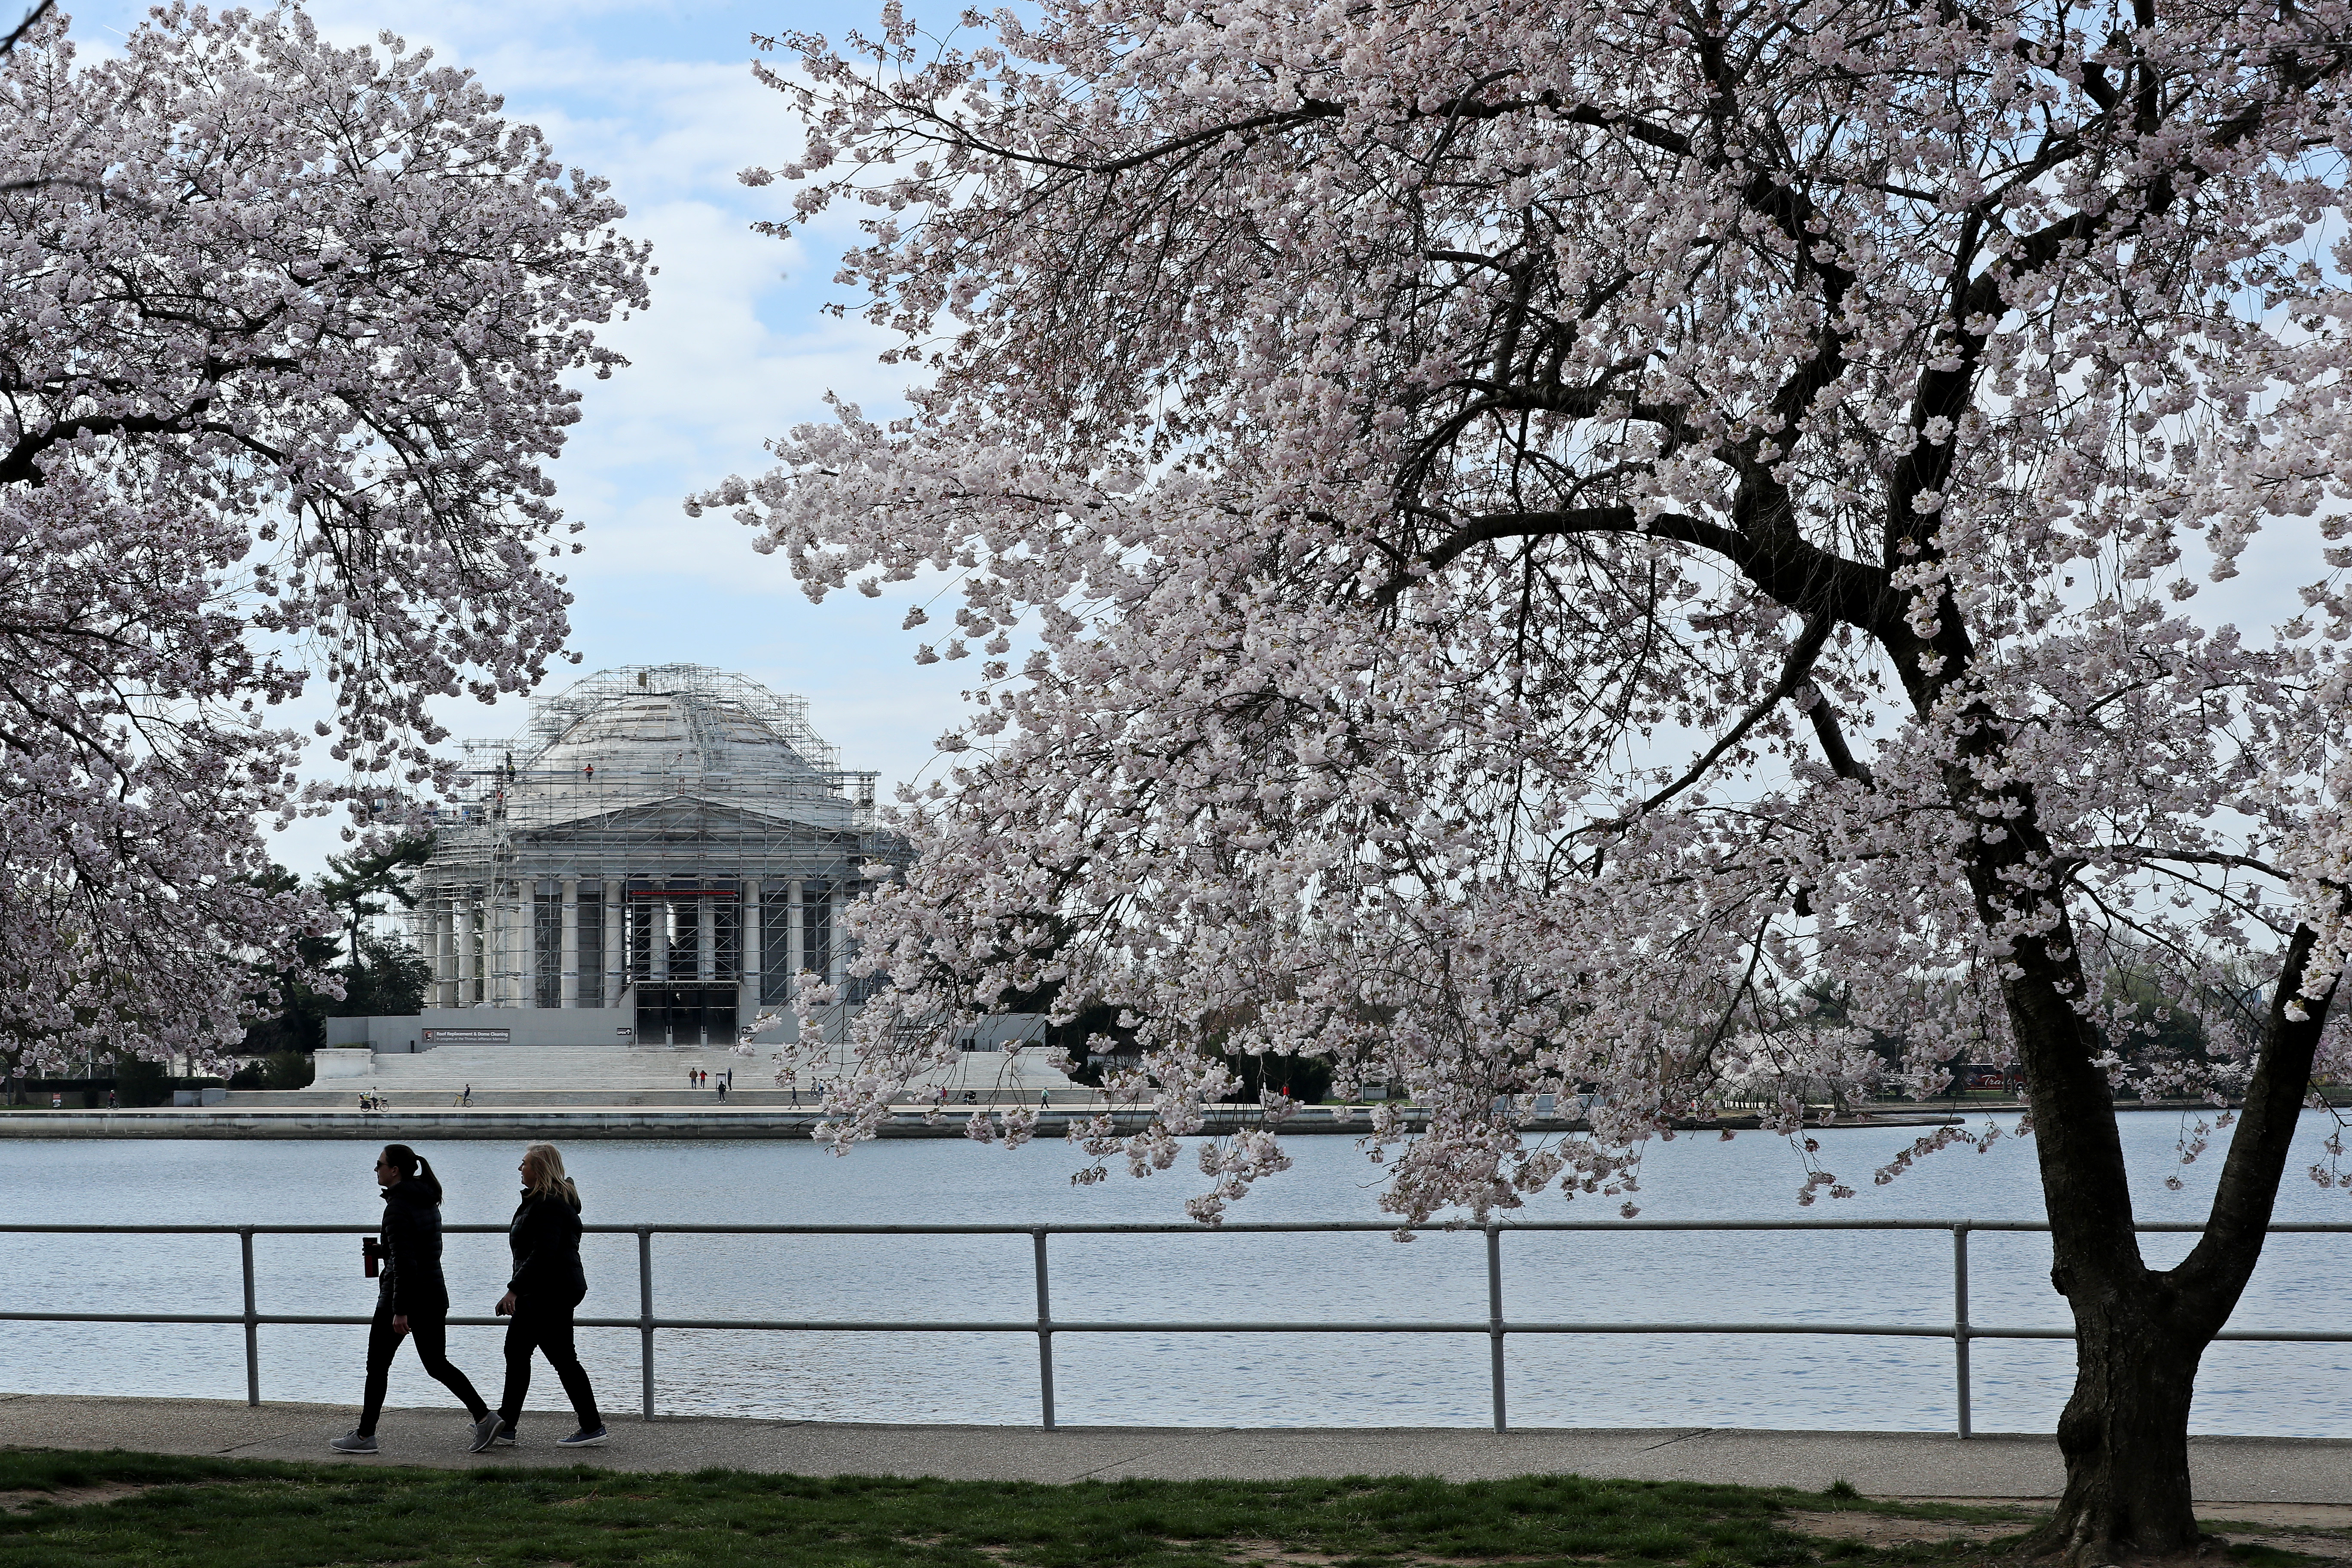 Two people walk along the water of the Tidal Basin in Washington, DC using a path under the blossoms of pastel pink cherry trees